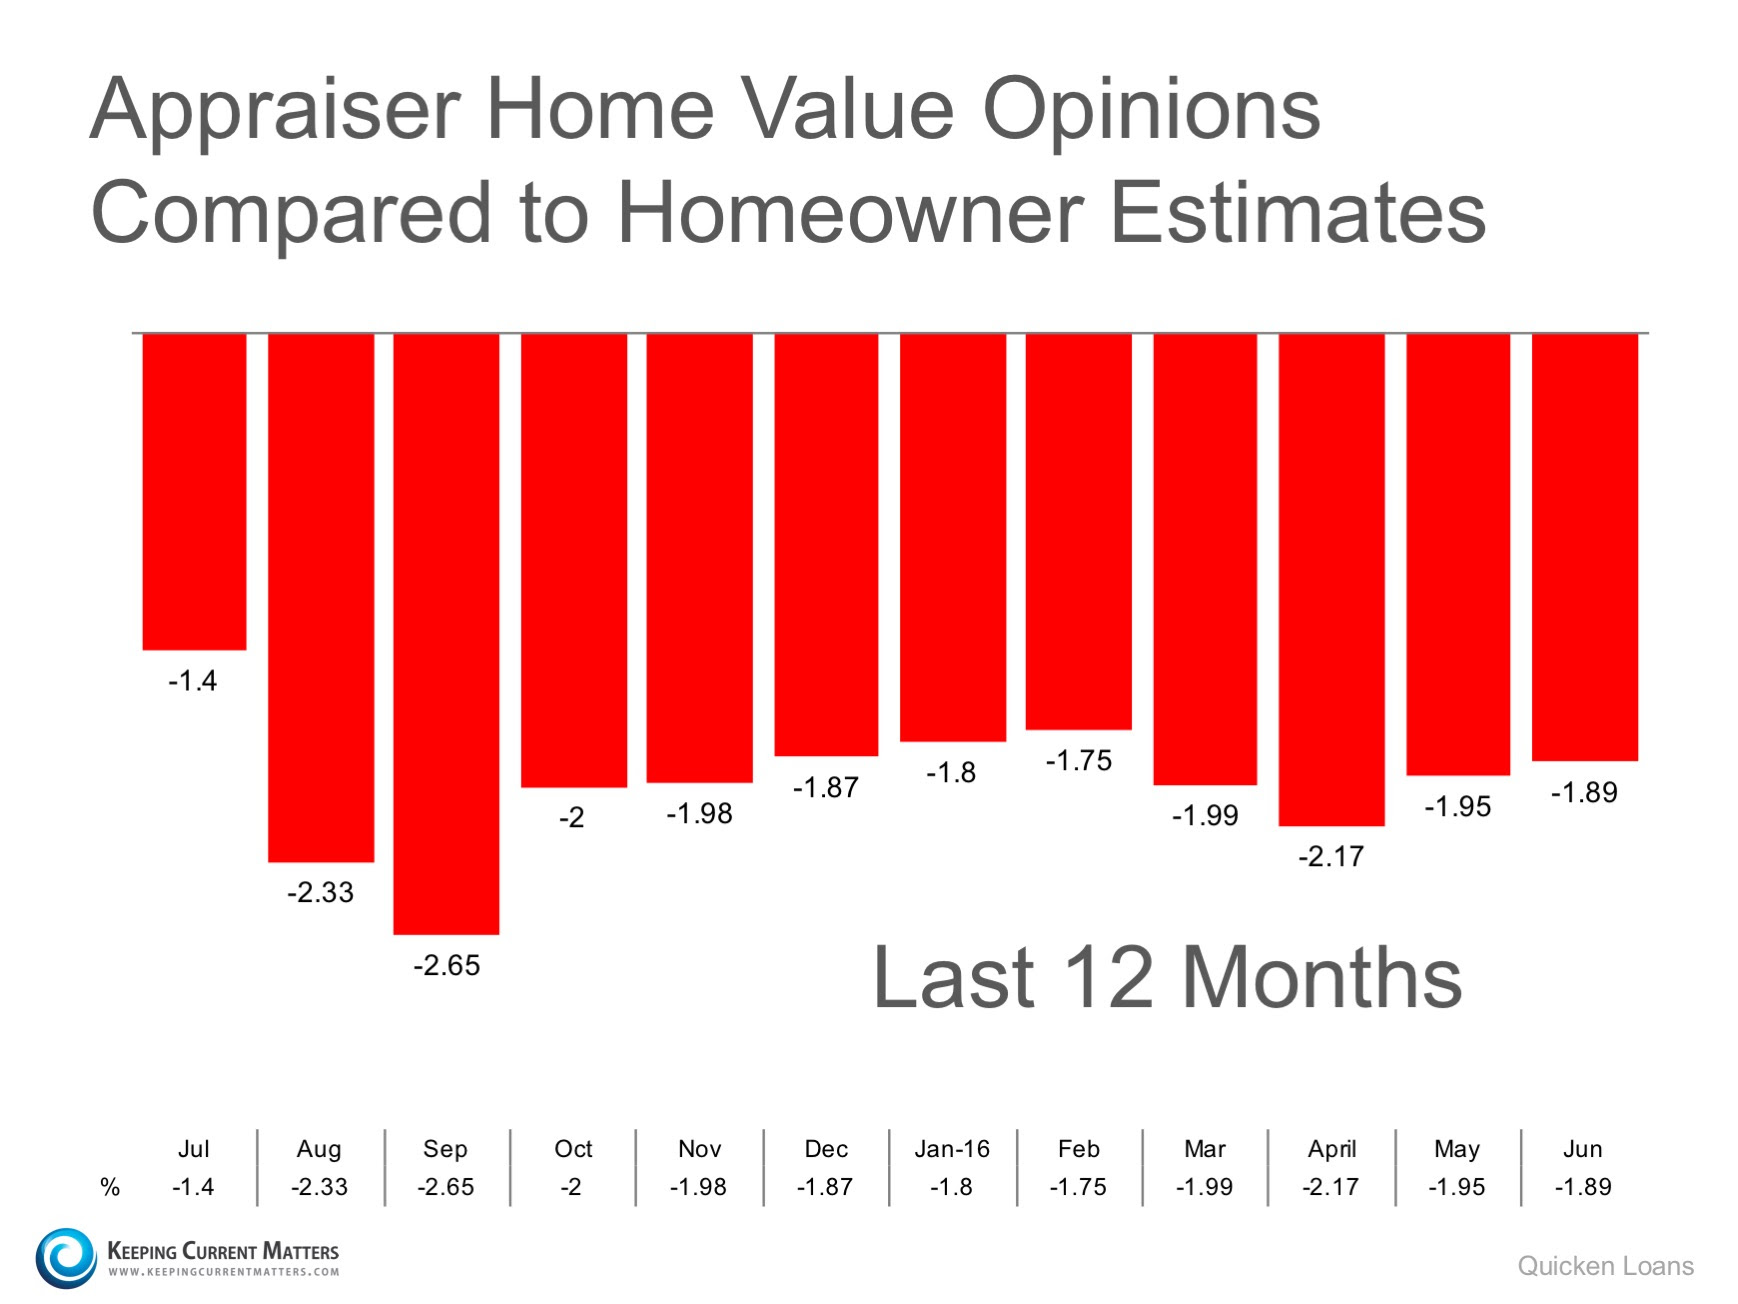 Gap Between Homeowner's & Appraiser's Opinions Narrows Slightly | Keeping Current Matters